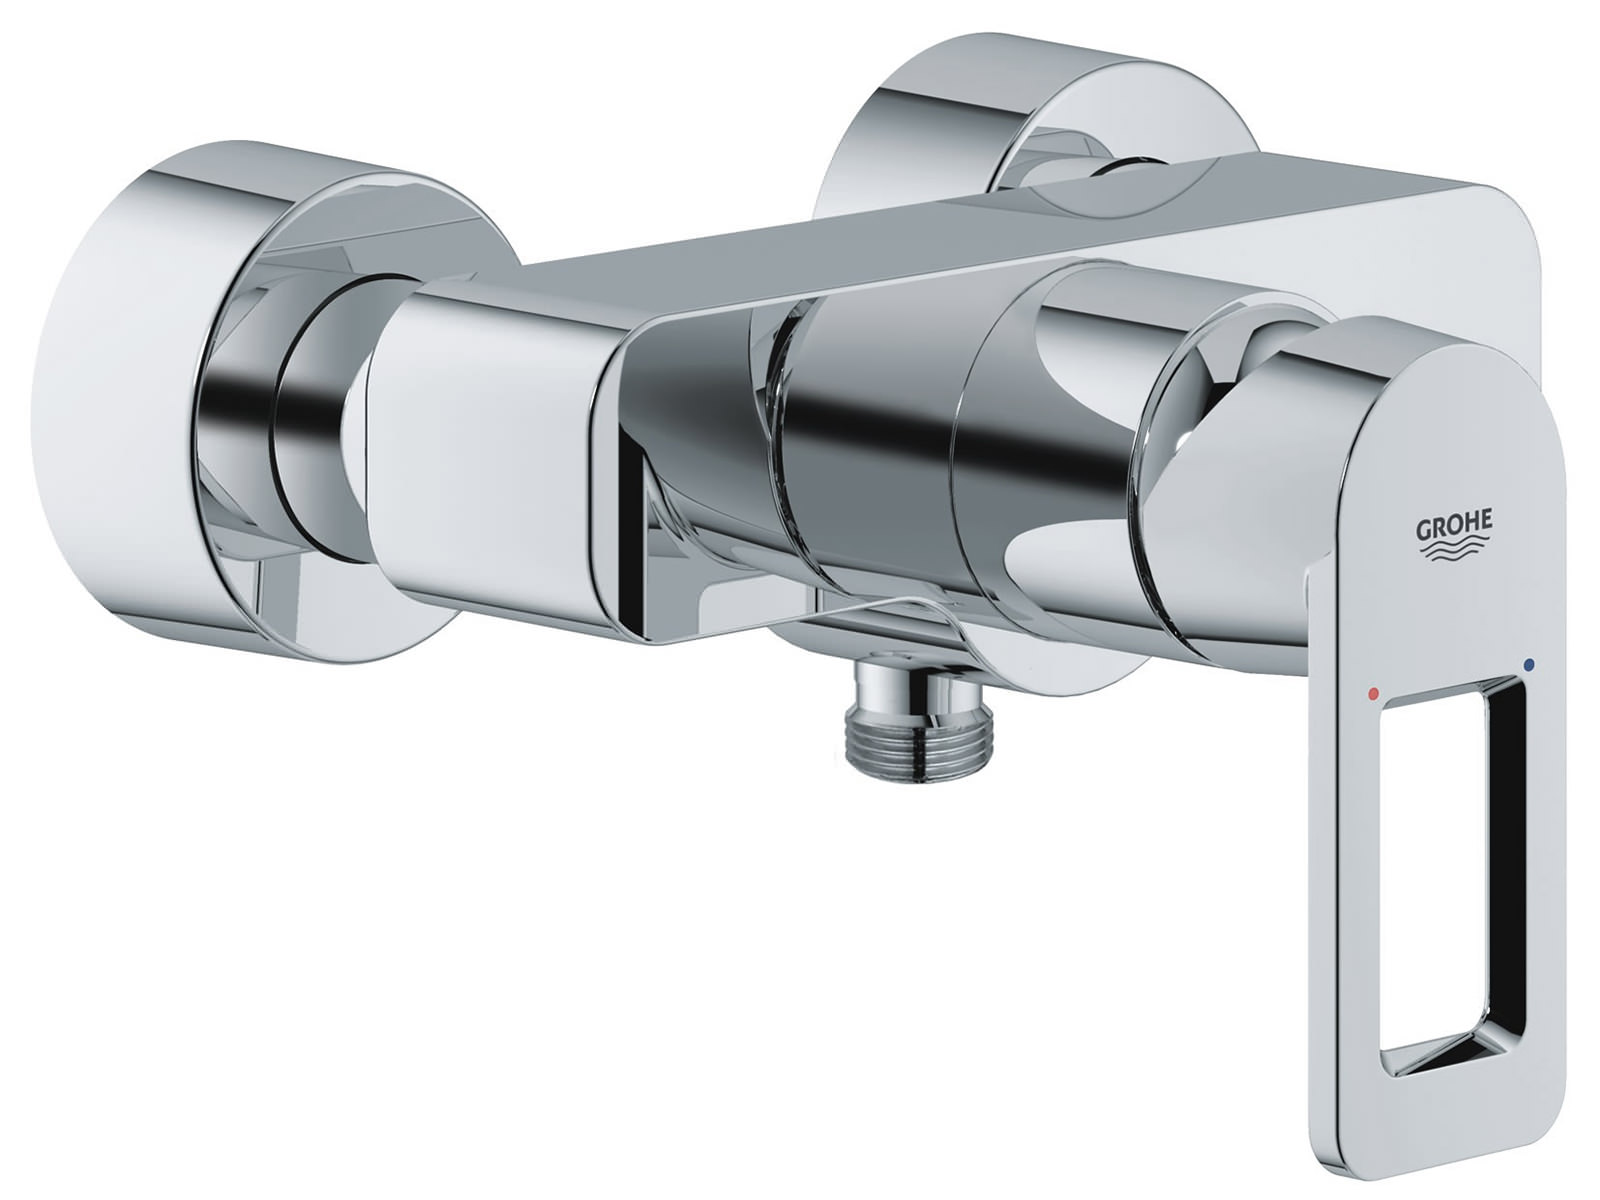 grohe quadra wall mounted exposed shower mixer valve. Black Bedroom Furniture Sets. Home Design Ideas